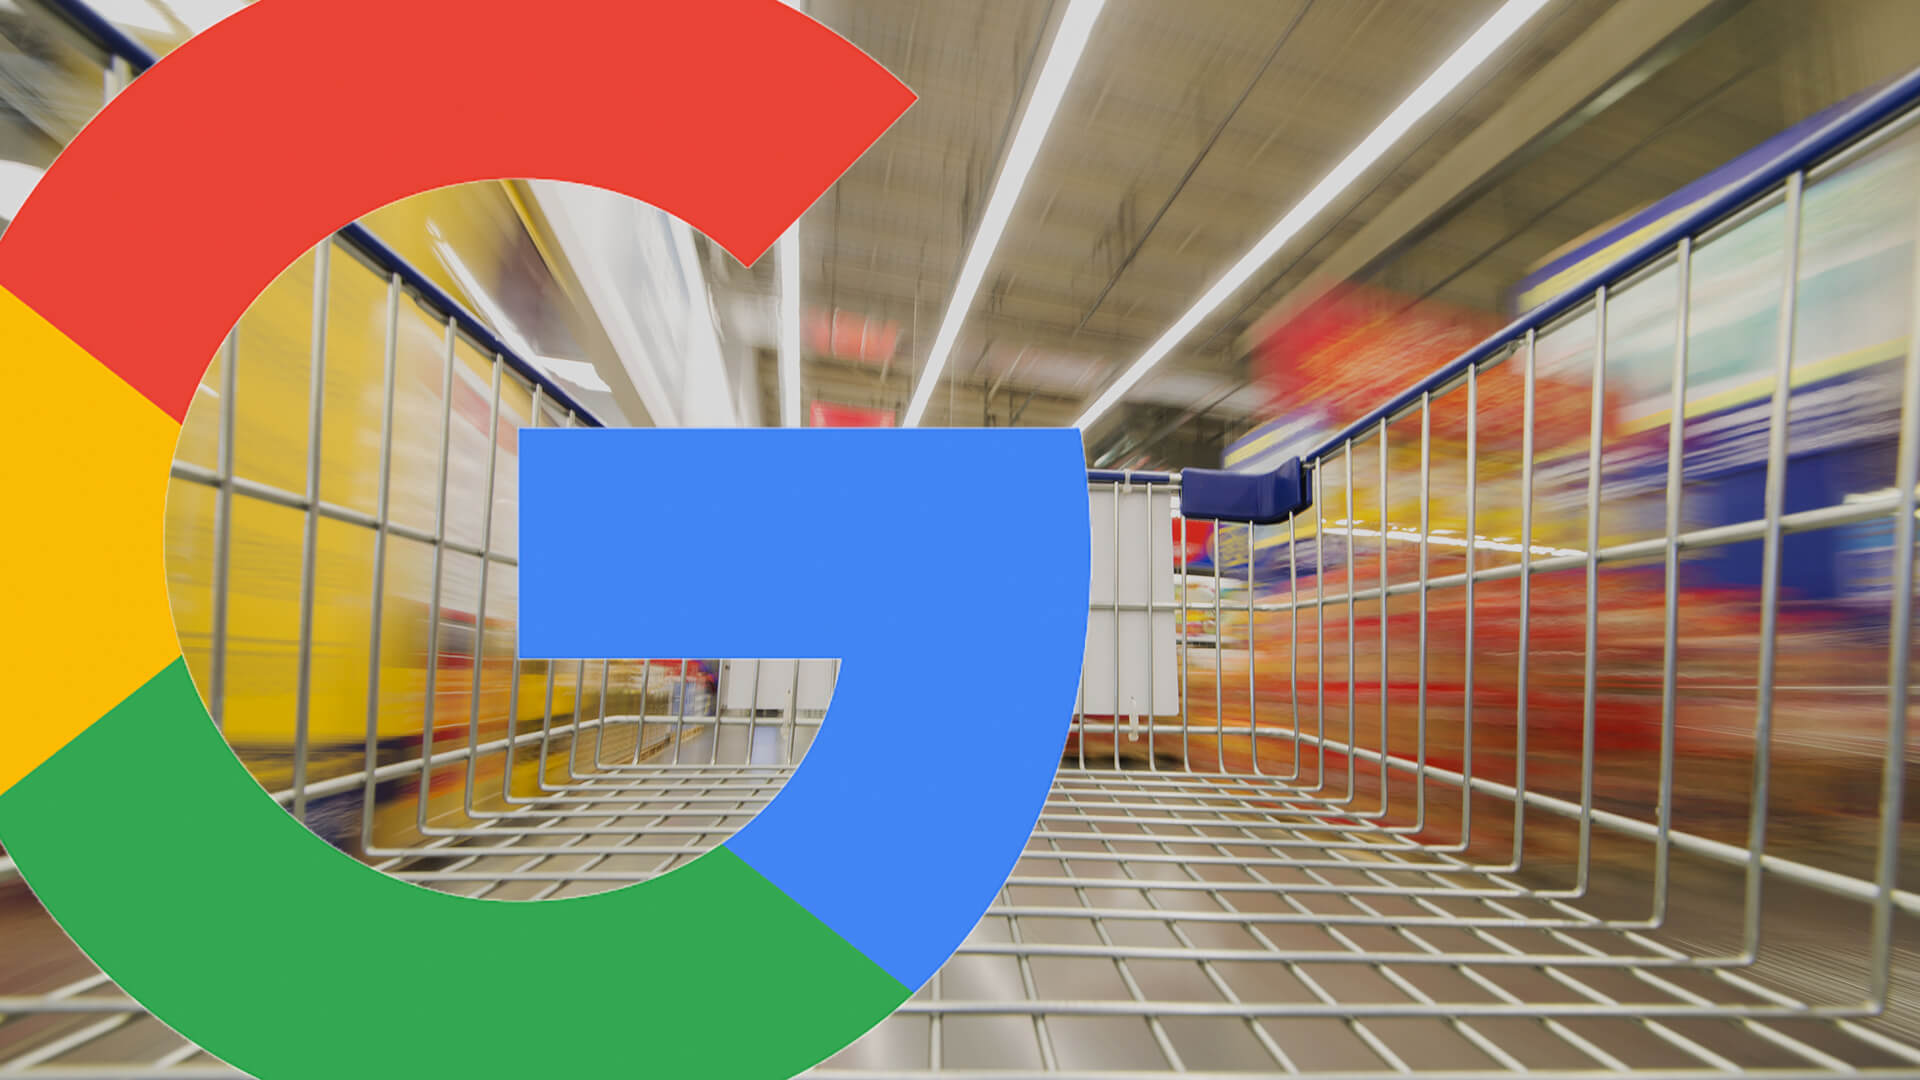 google-shopping-cart-2016b-ss-1920